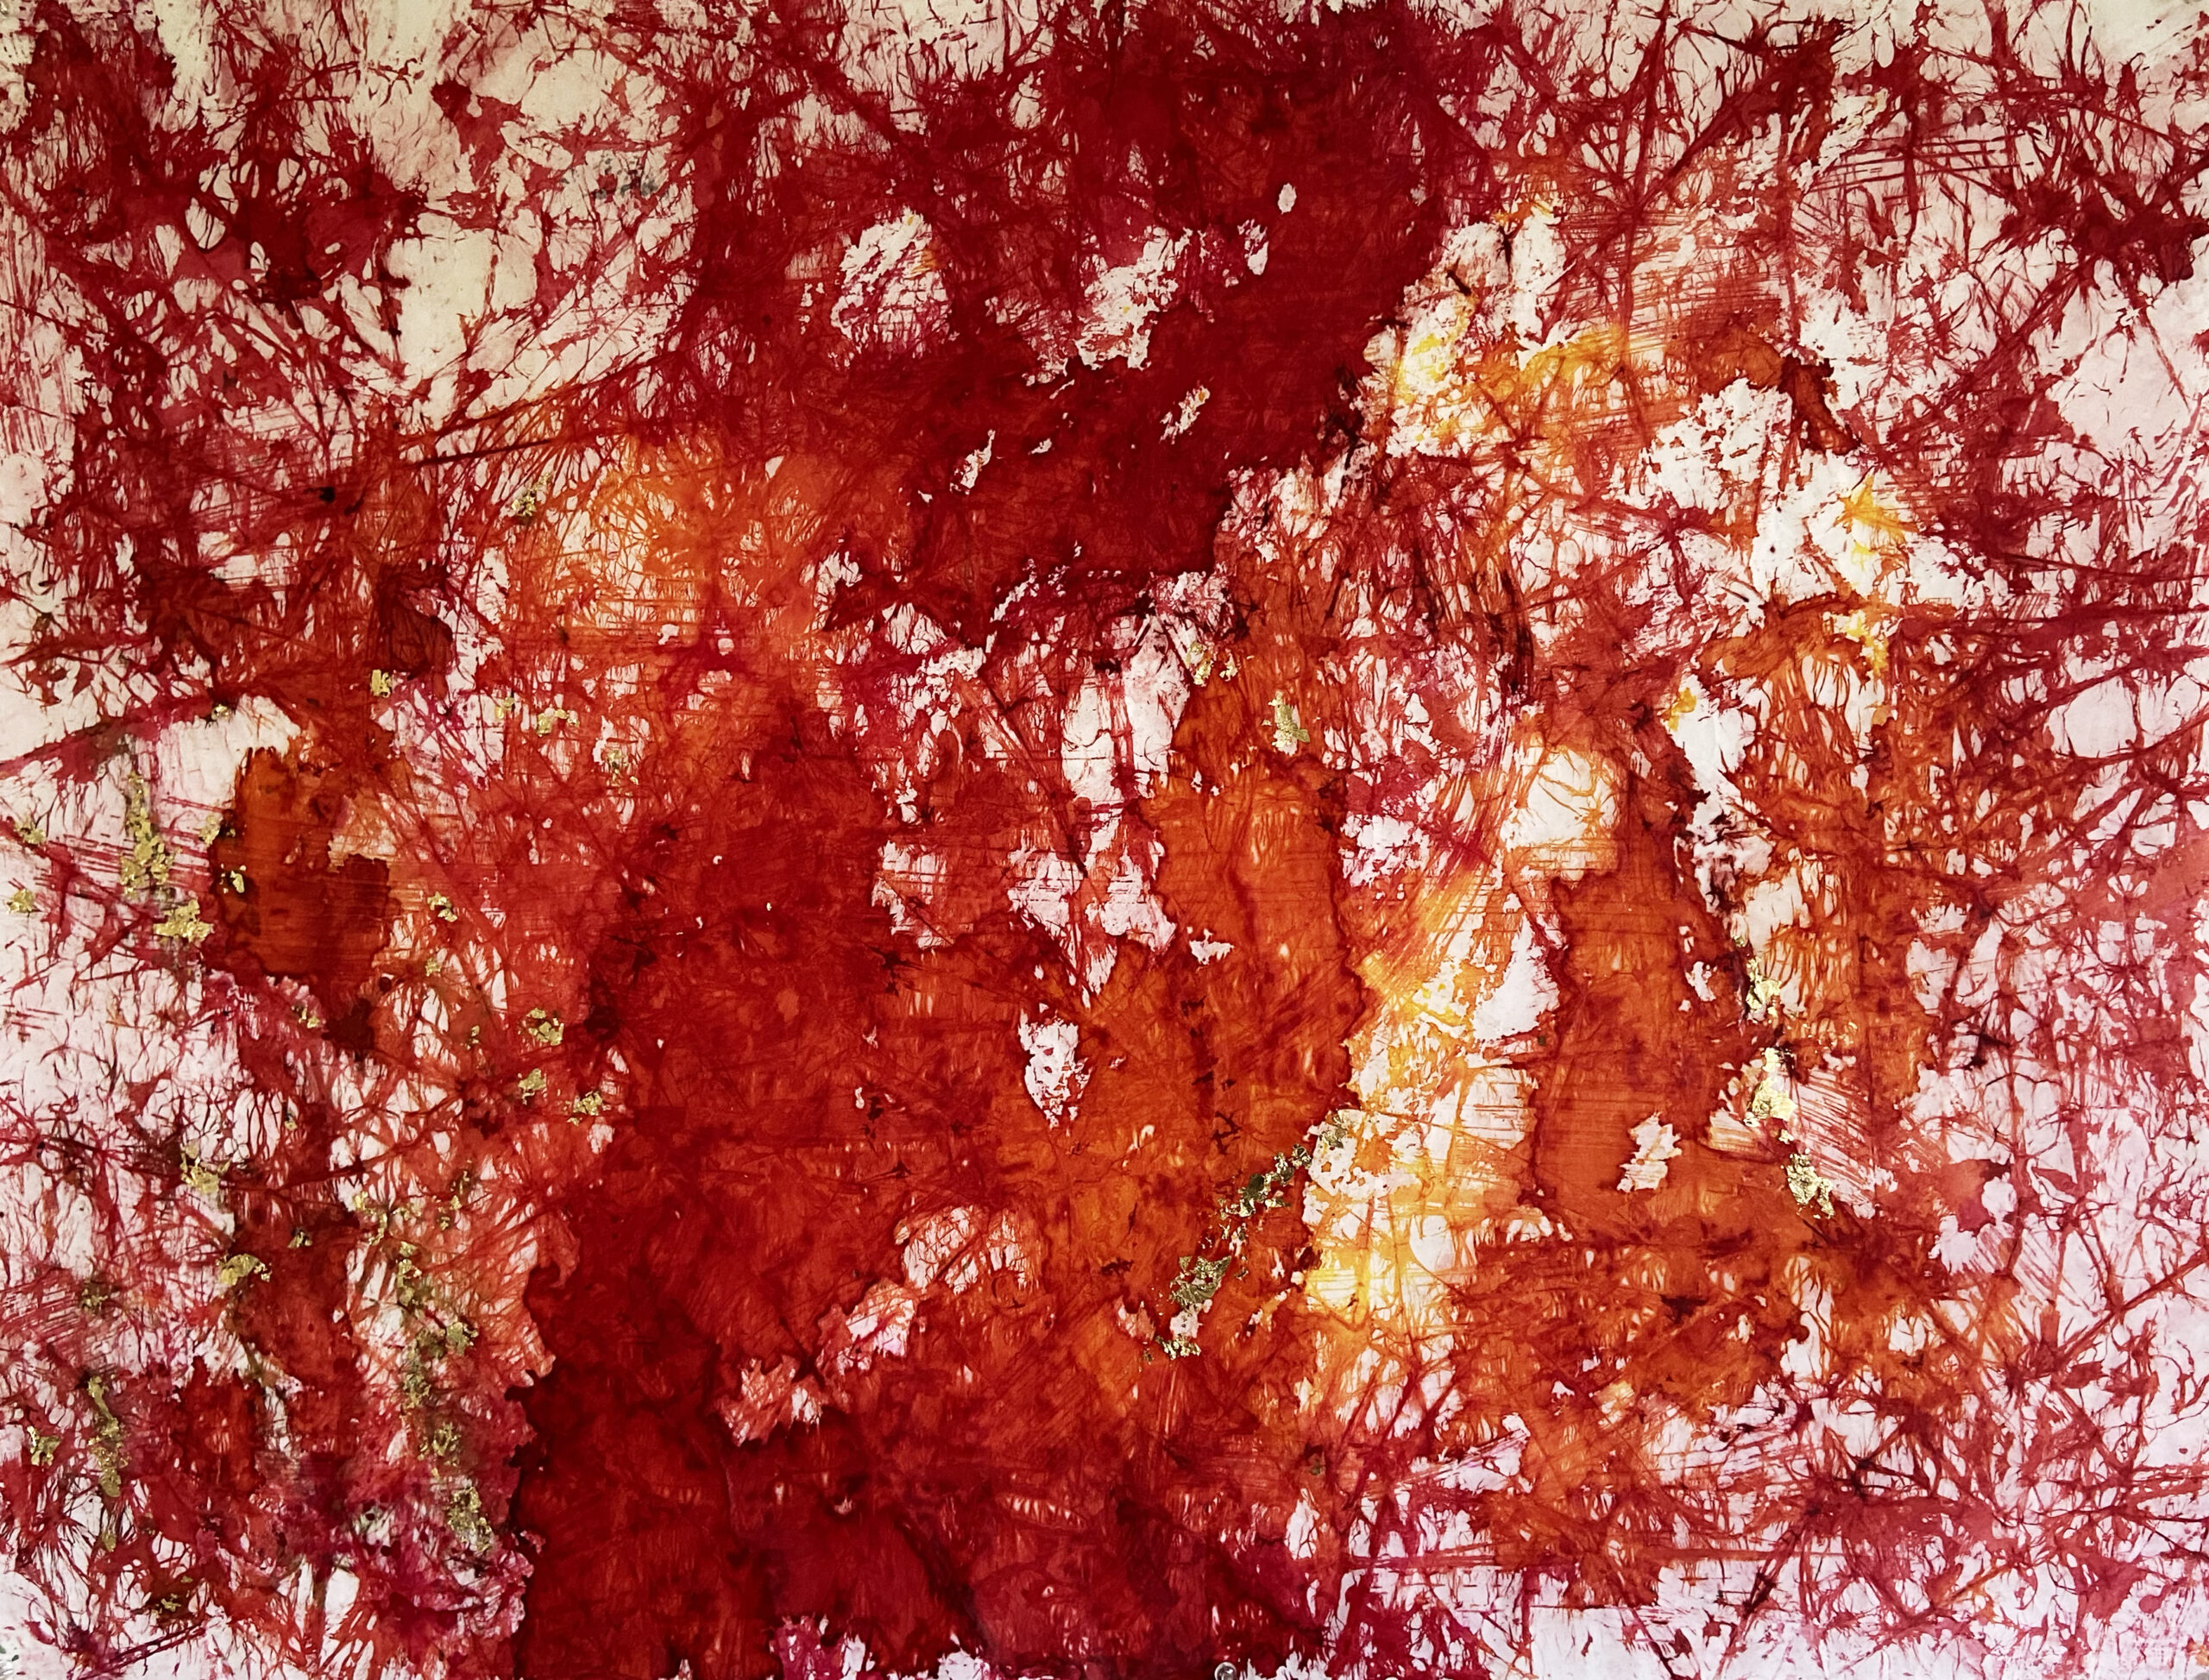 Shreya Mehta, Fire Elemental Landscape, Vegan pigment, 22K gold leaf, Ink on cold pressed Arches paper, 35''x25'', $3,600